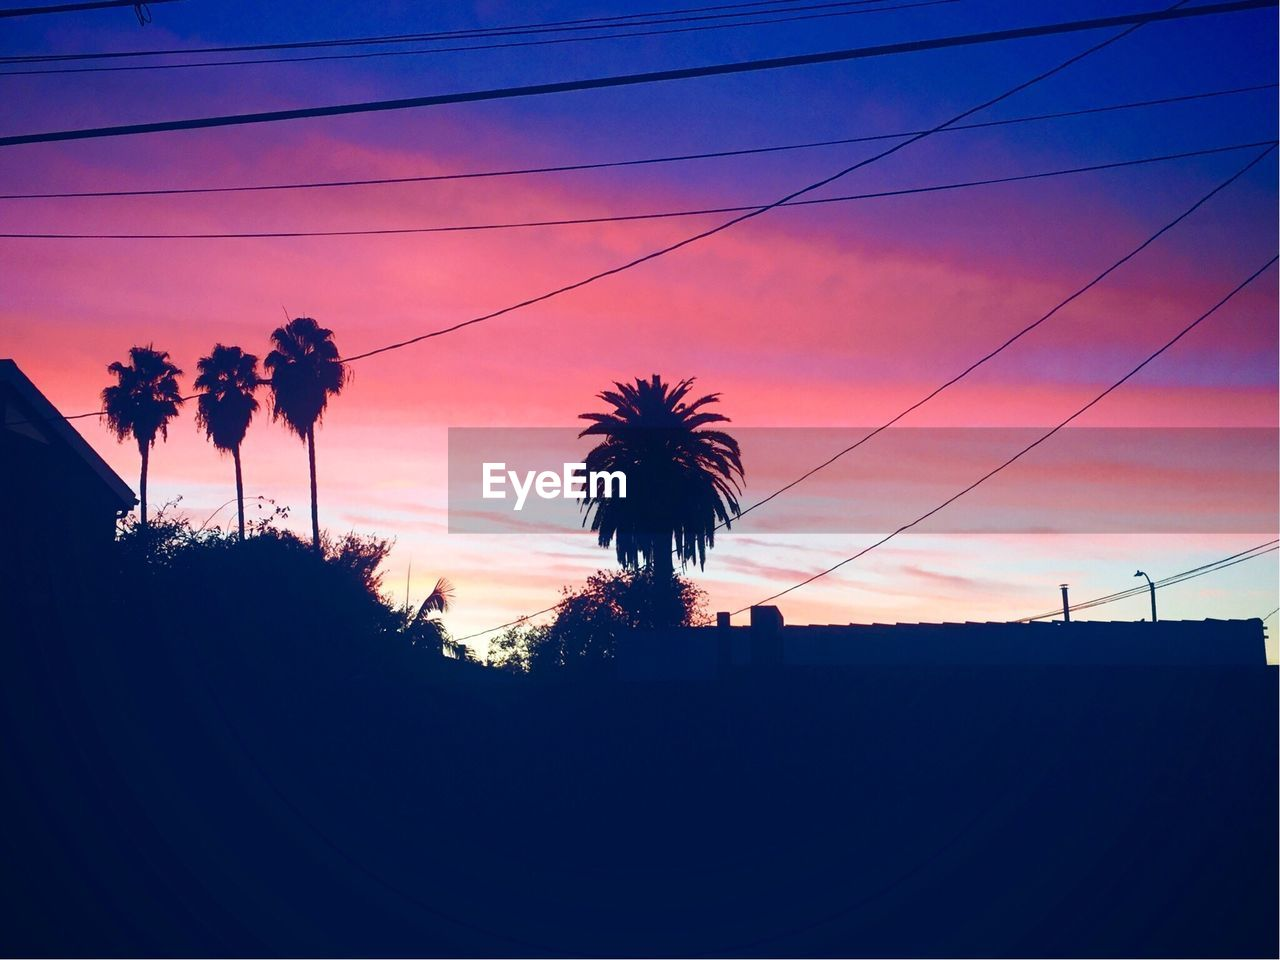 sunset, silhouette, cable, low angle view, sky, tree, palm tree, outdoors, nature, beauty in nature, no people, day